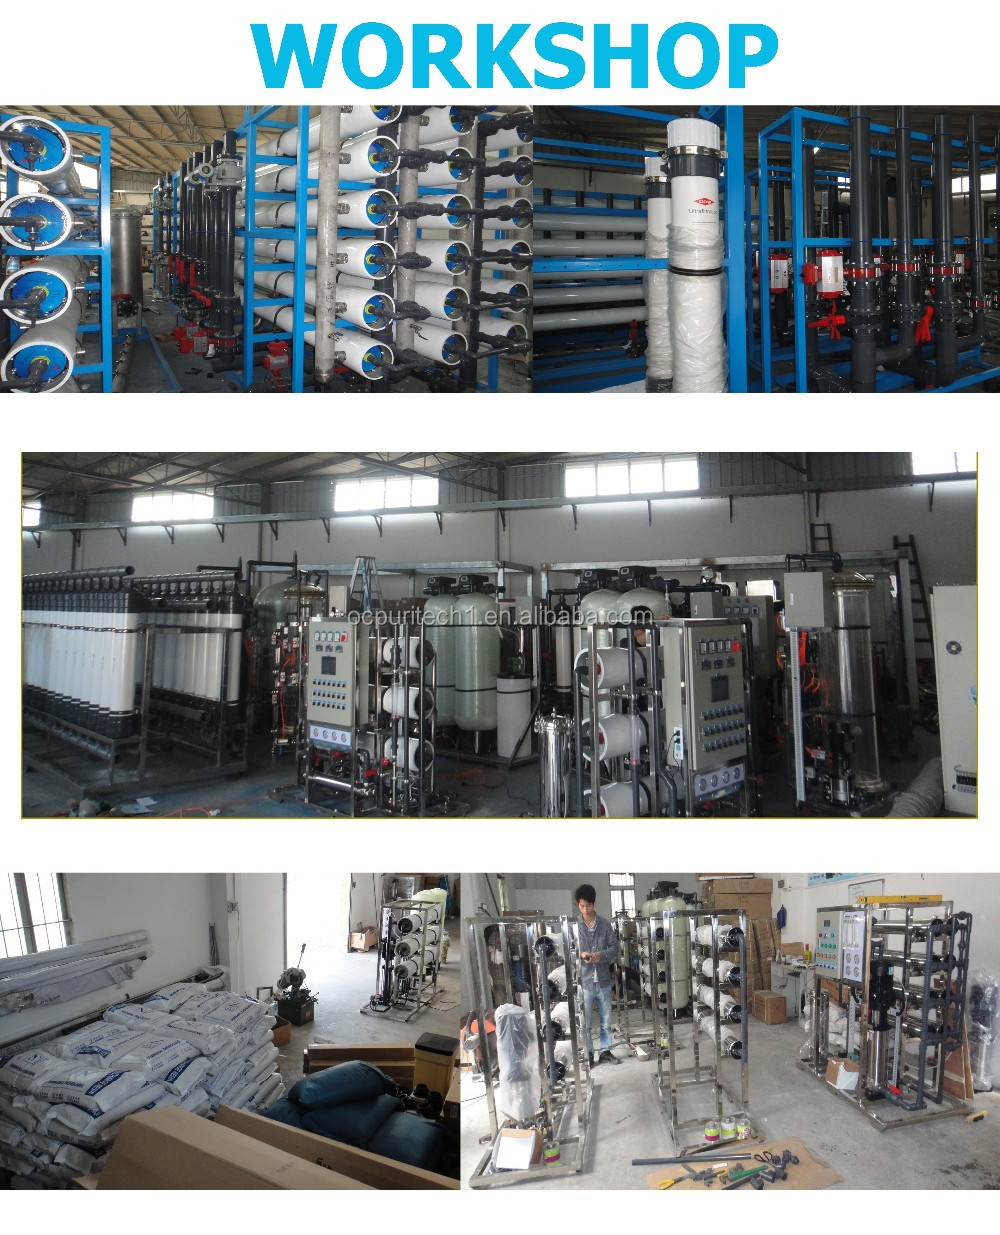 Pretreatment System of RO Water Treatment Equipment for Cosmetic, Paramaceutical,Chemical Industries